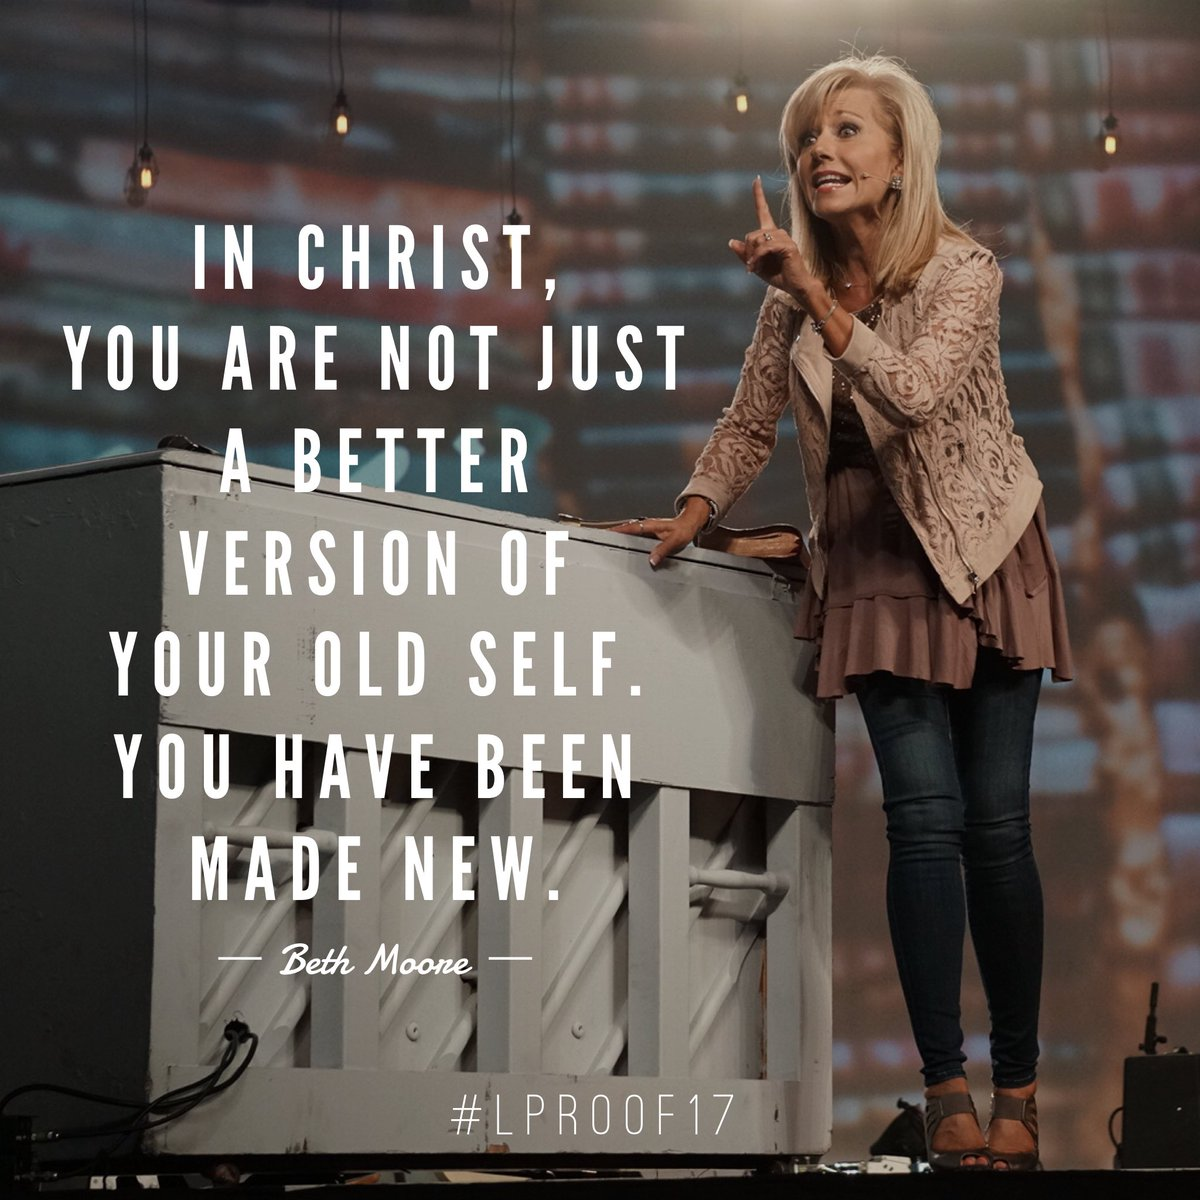 You have been made new. #LProof17 https://t.co/dbXJs5TNpU